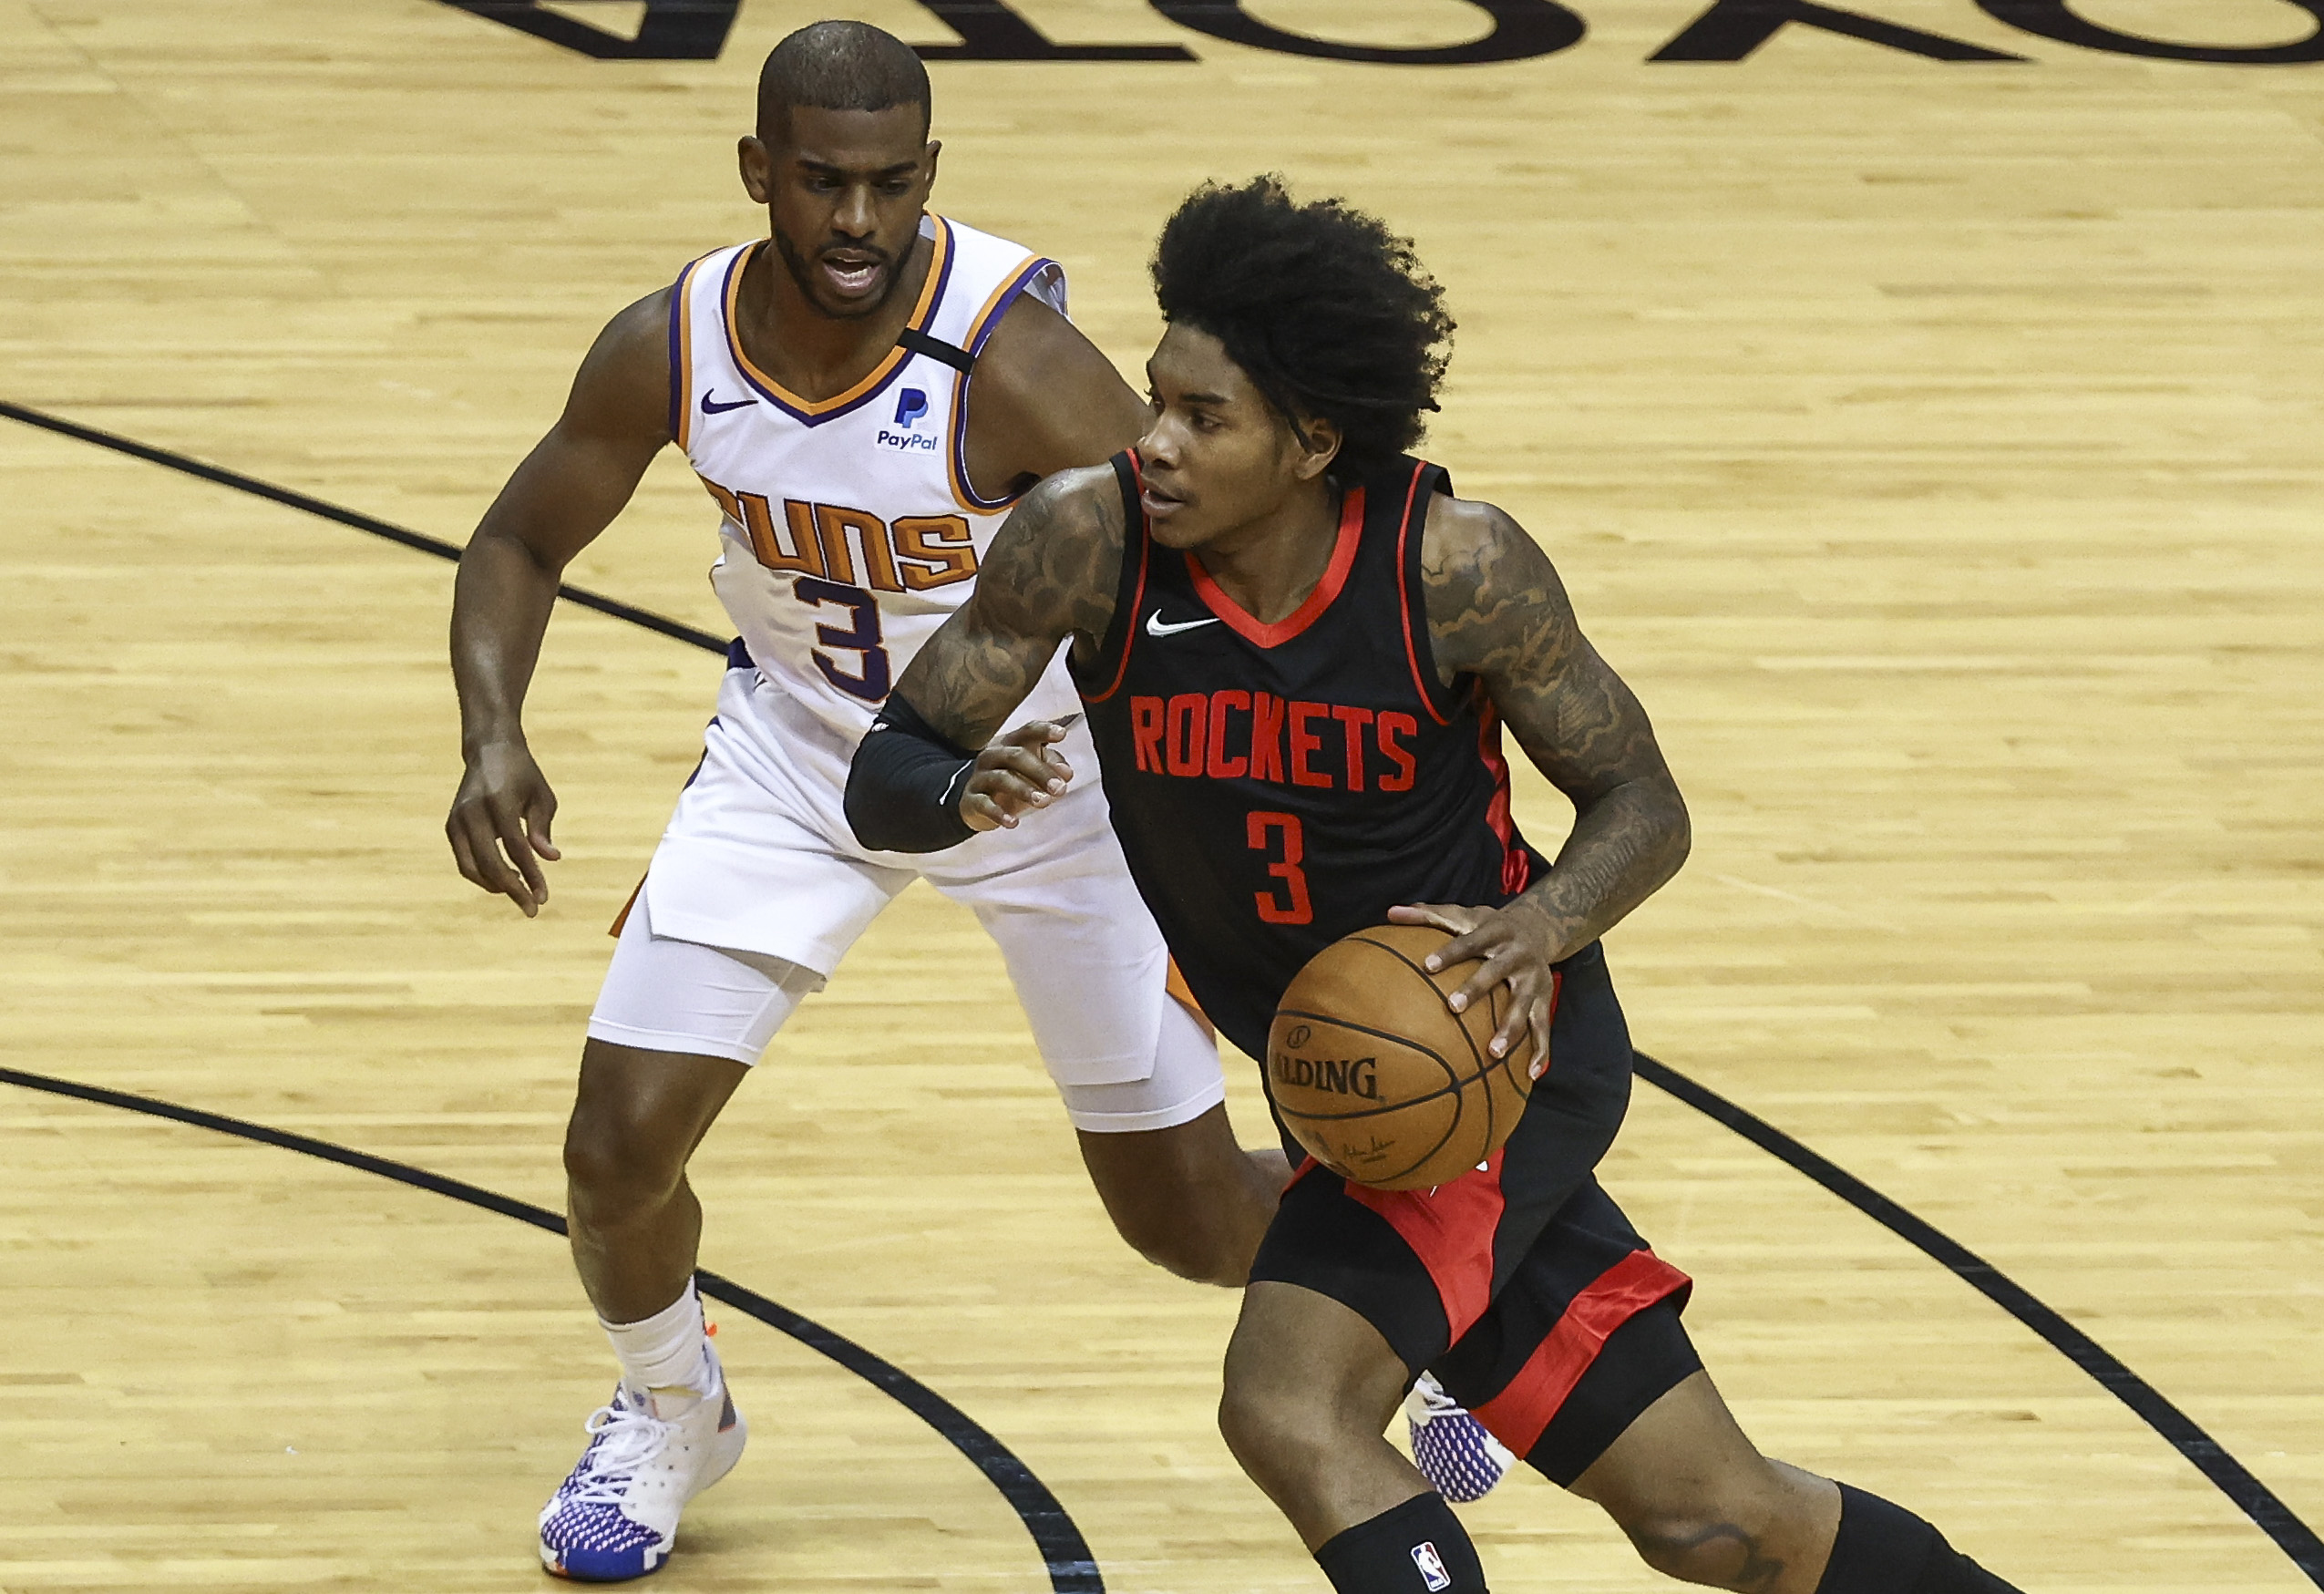 Apr 5, 2021; Houston, Texas, USA; Houston Rockets guard Kevin Porter Jr. (right) dribbles the ball against Phoenix Suns guard Chris Paul (left) during the first quarter at Toyota Center. Mandatory Credit: Troy Taormina-USA TODAY Sports